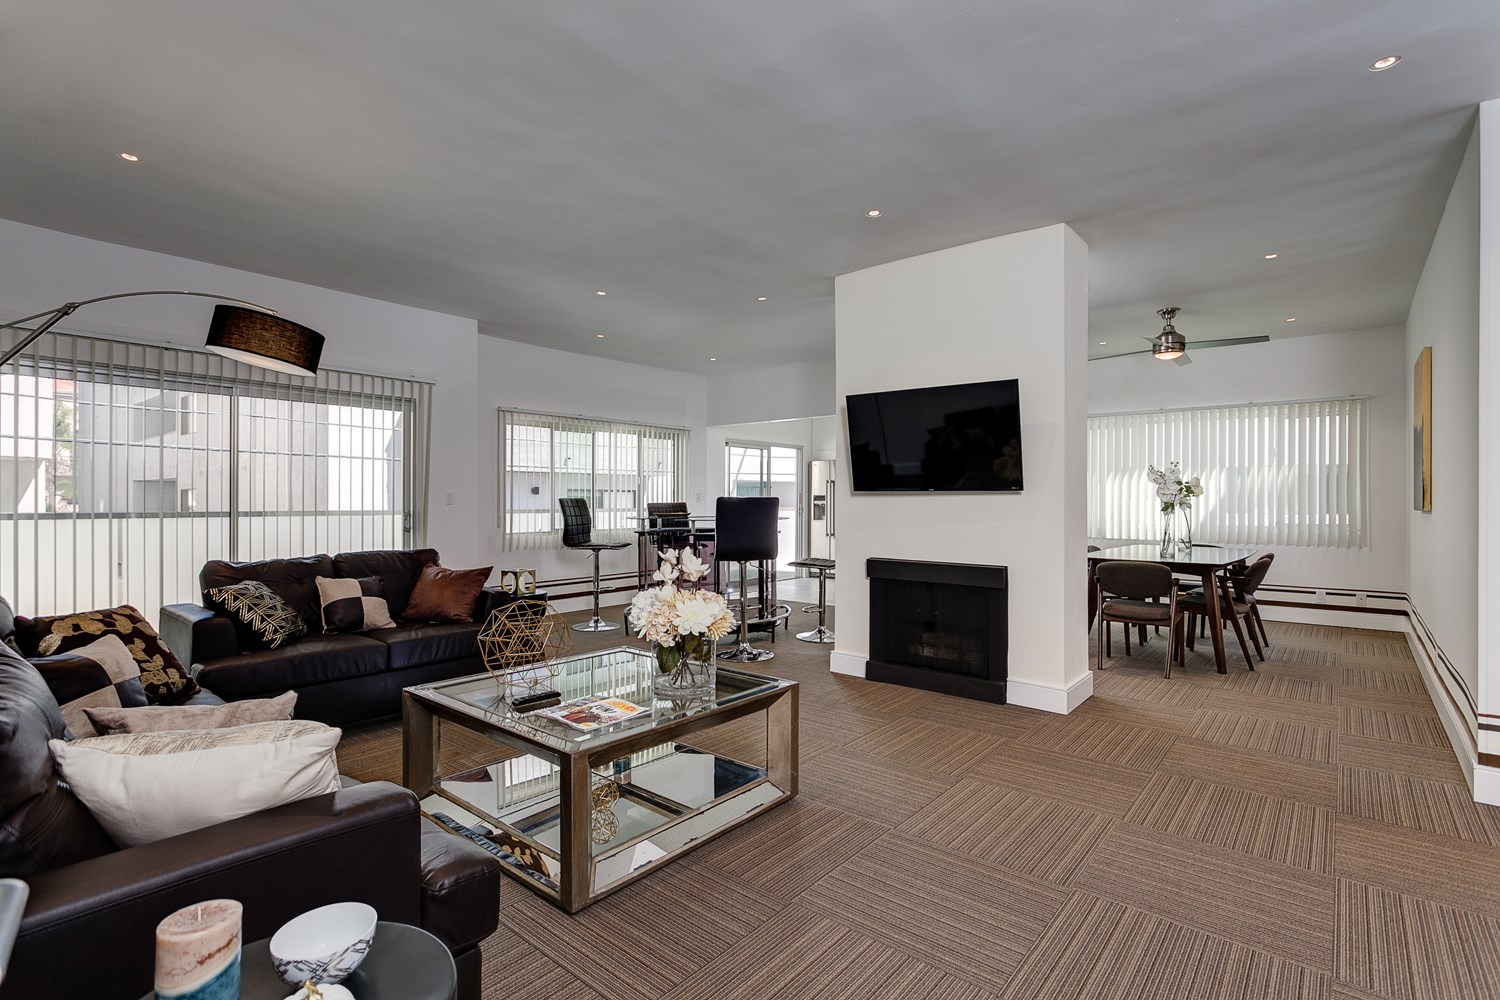 Chic FURNISHED, Pet-Friendly West LA Condo Available for Short-Term Stays!